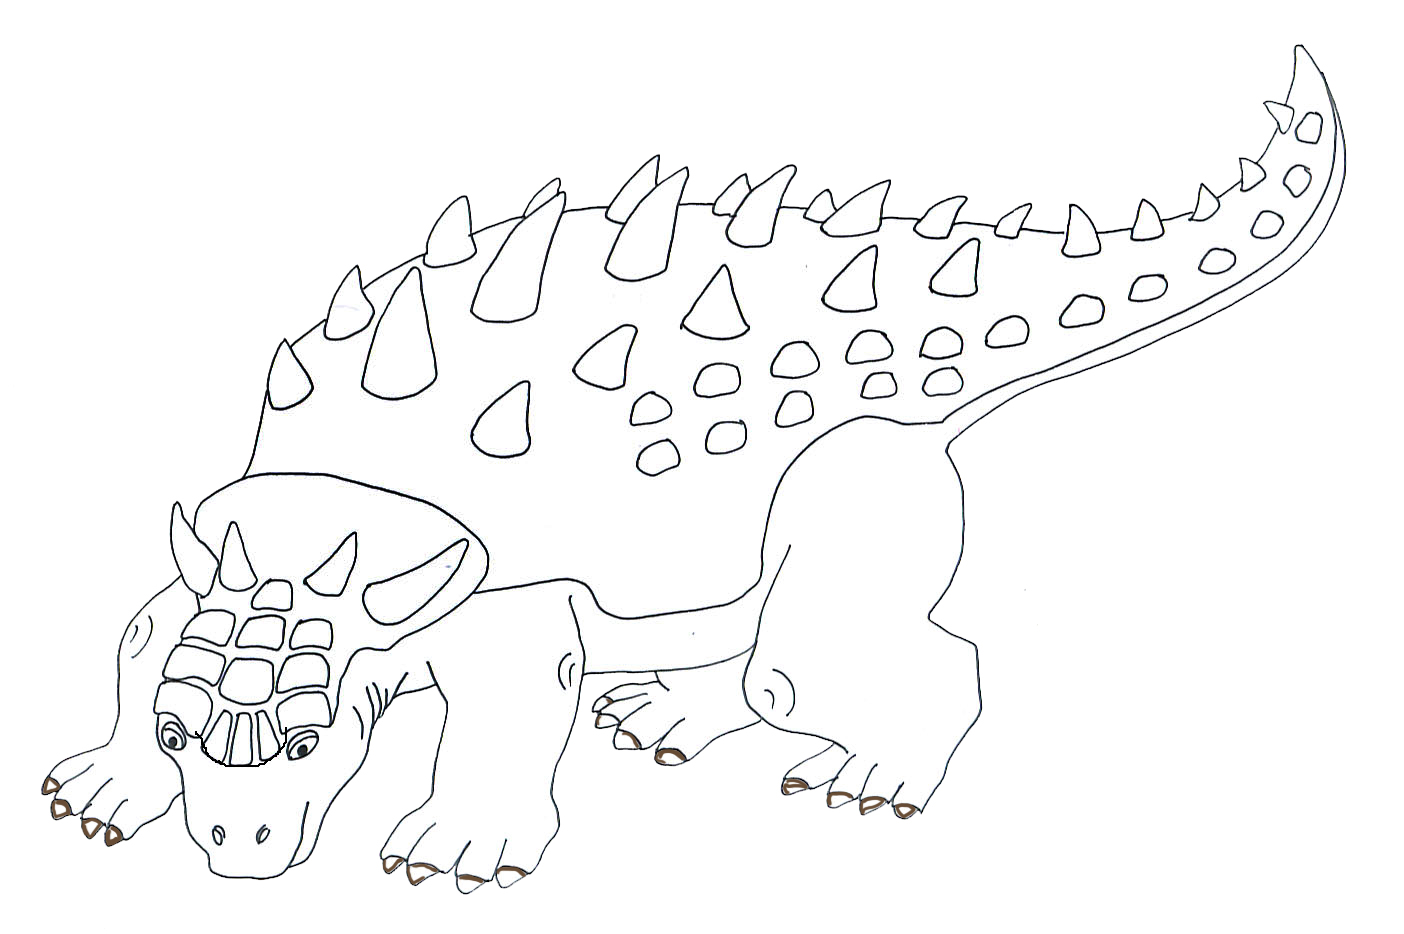 drawing of Anchylosaurus